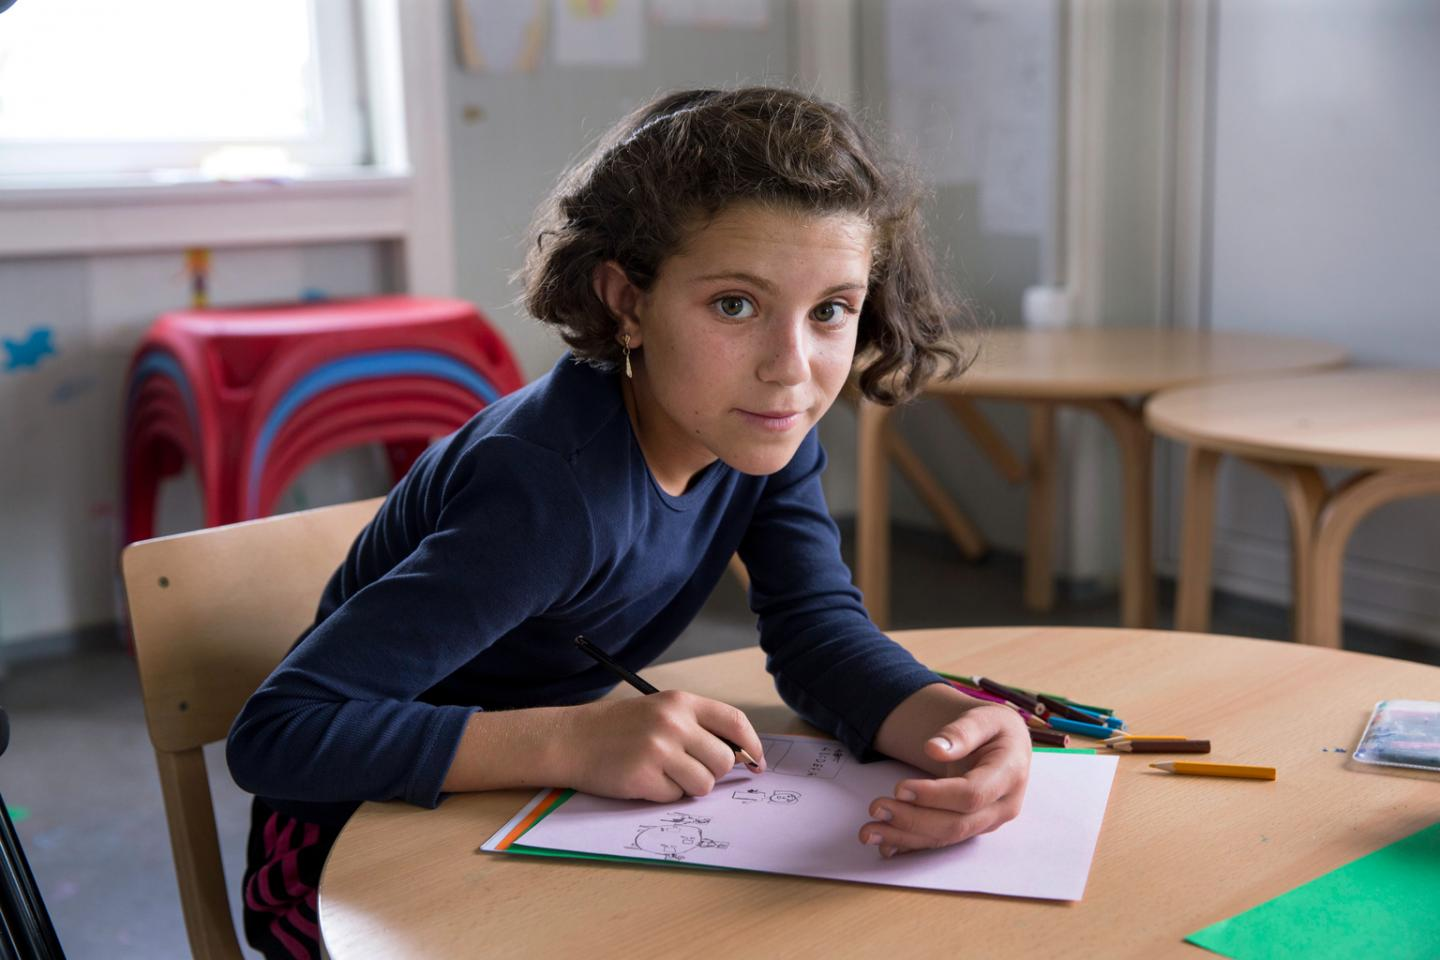 Hiba Al Nabolsi a 10 year old Syrian refugee endured an exhausting and risky journey to safety. Here she is in a UNICEF-supported child-friendly space at a refugee and migrant transit centre in the former Yugoslav Republic of Macedonia.